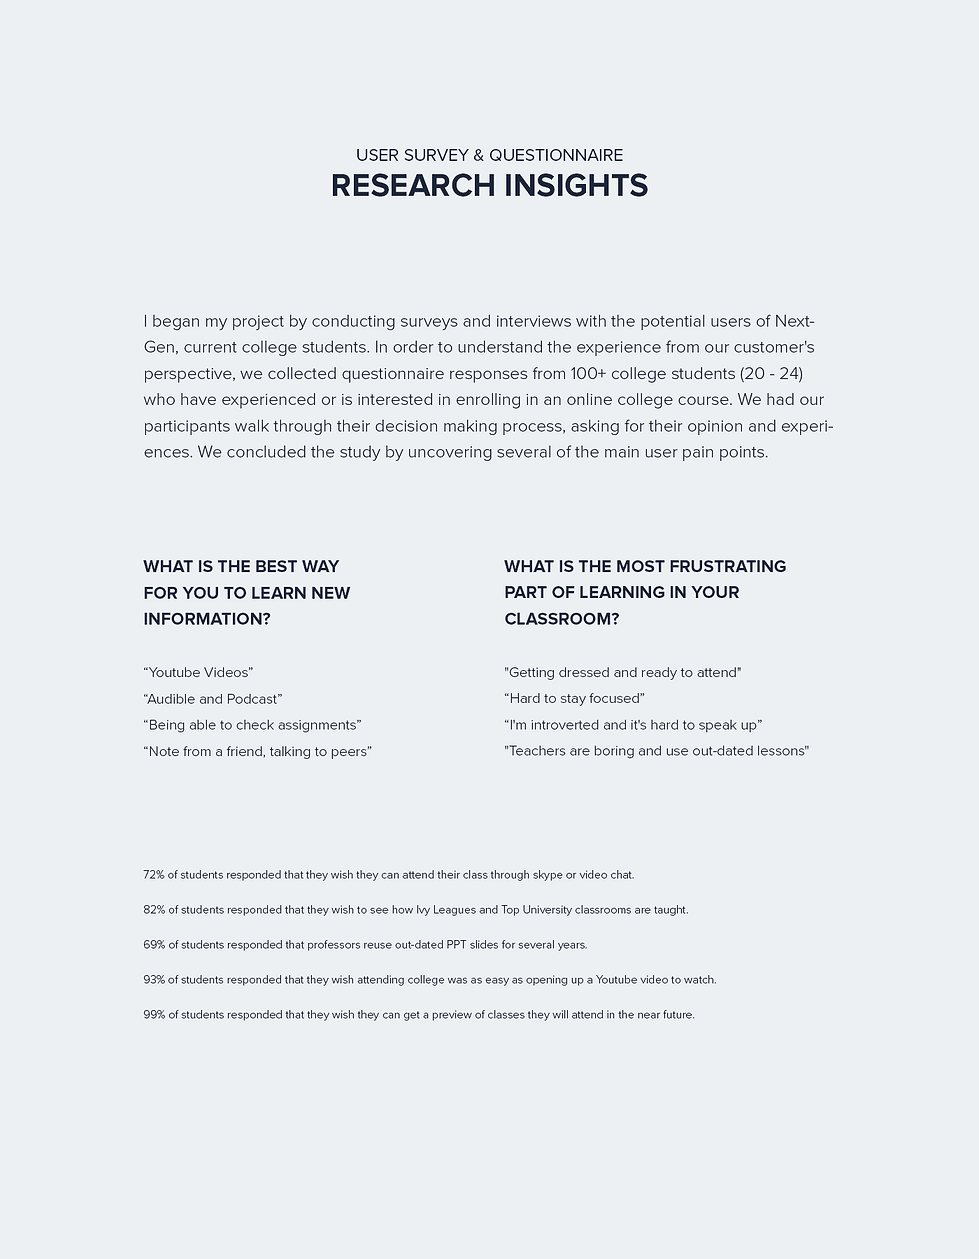 nextgen - research 2 - research insights